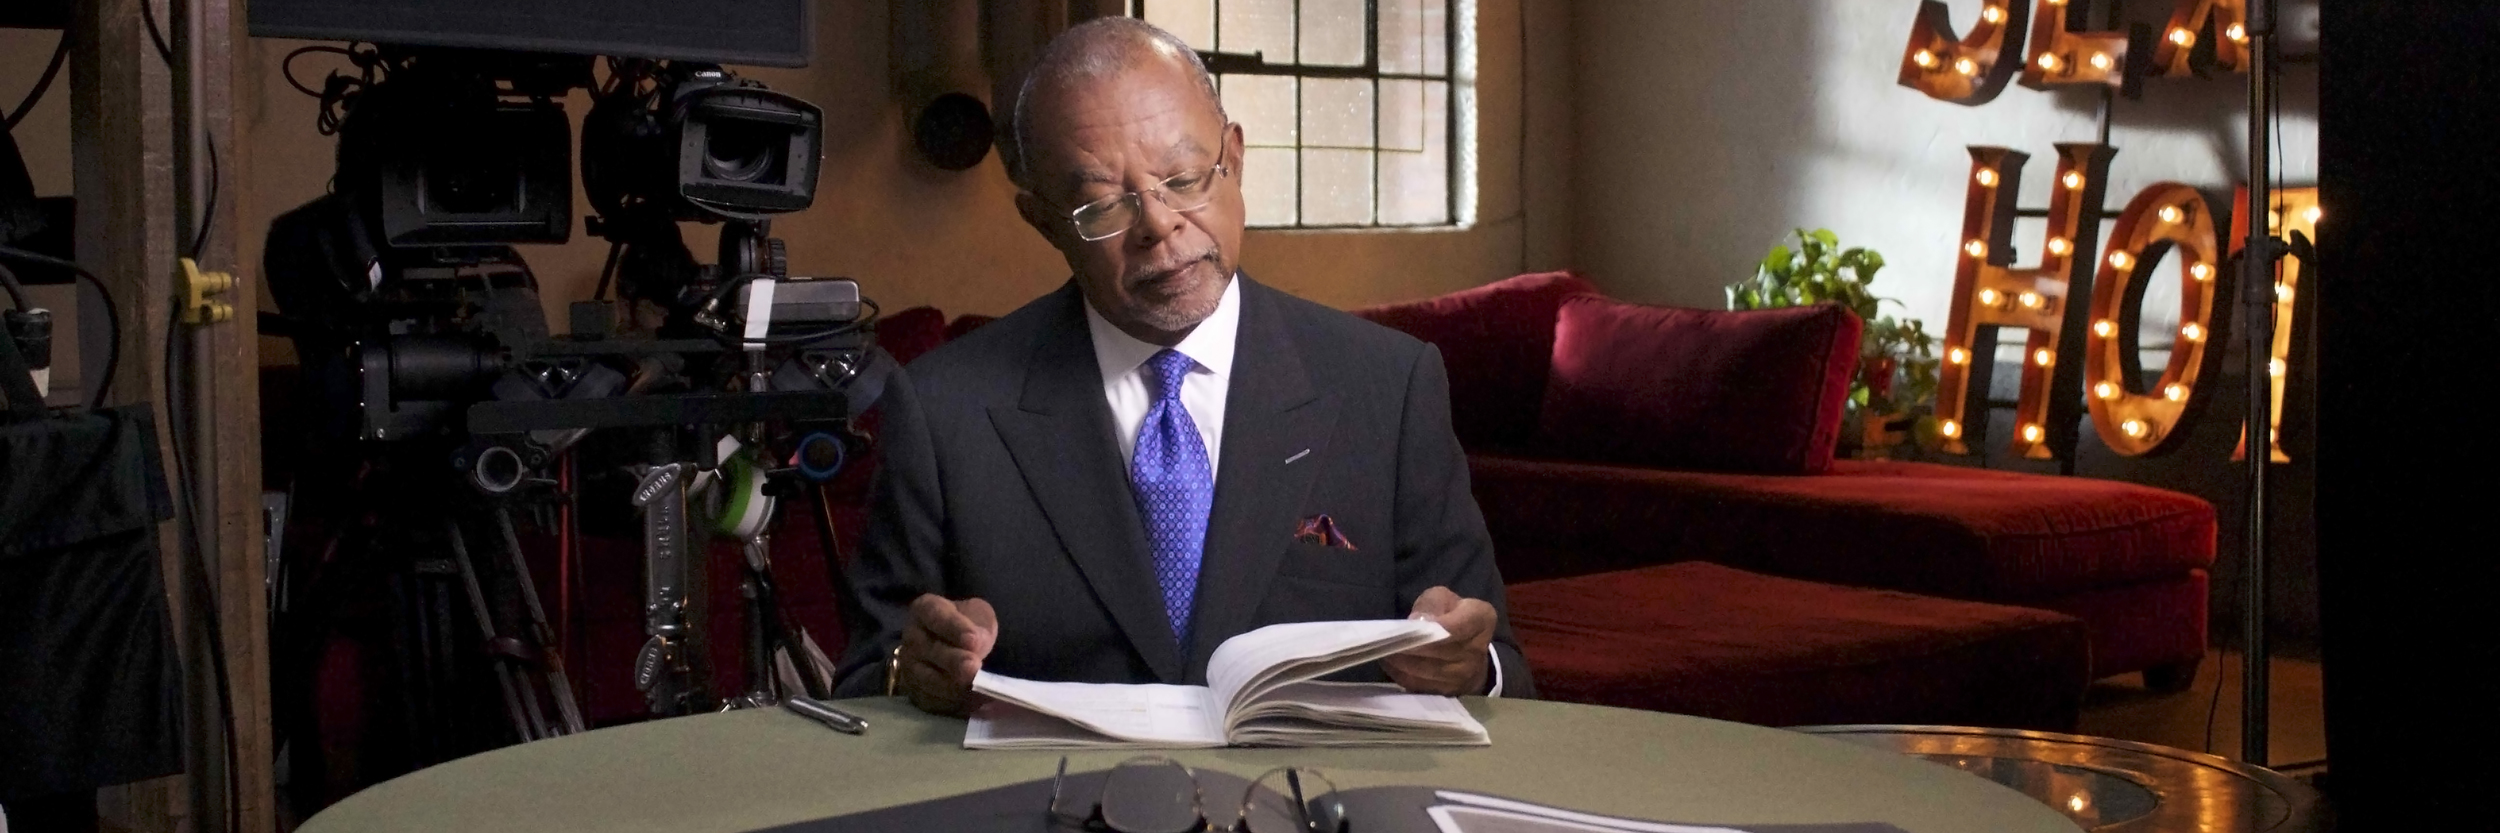 Production of Finding Your Roots Season 3 is Underway